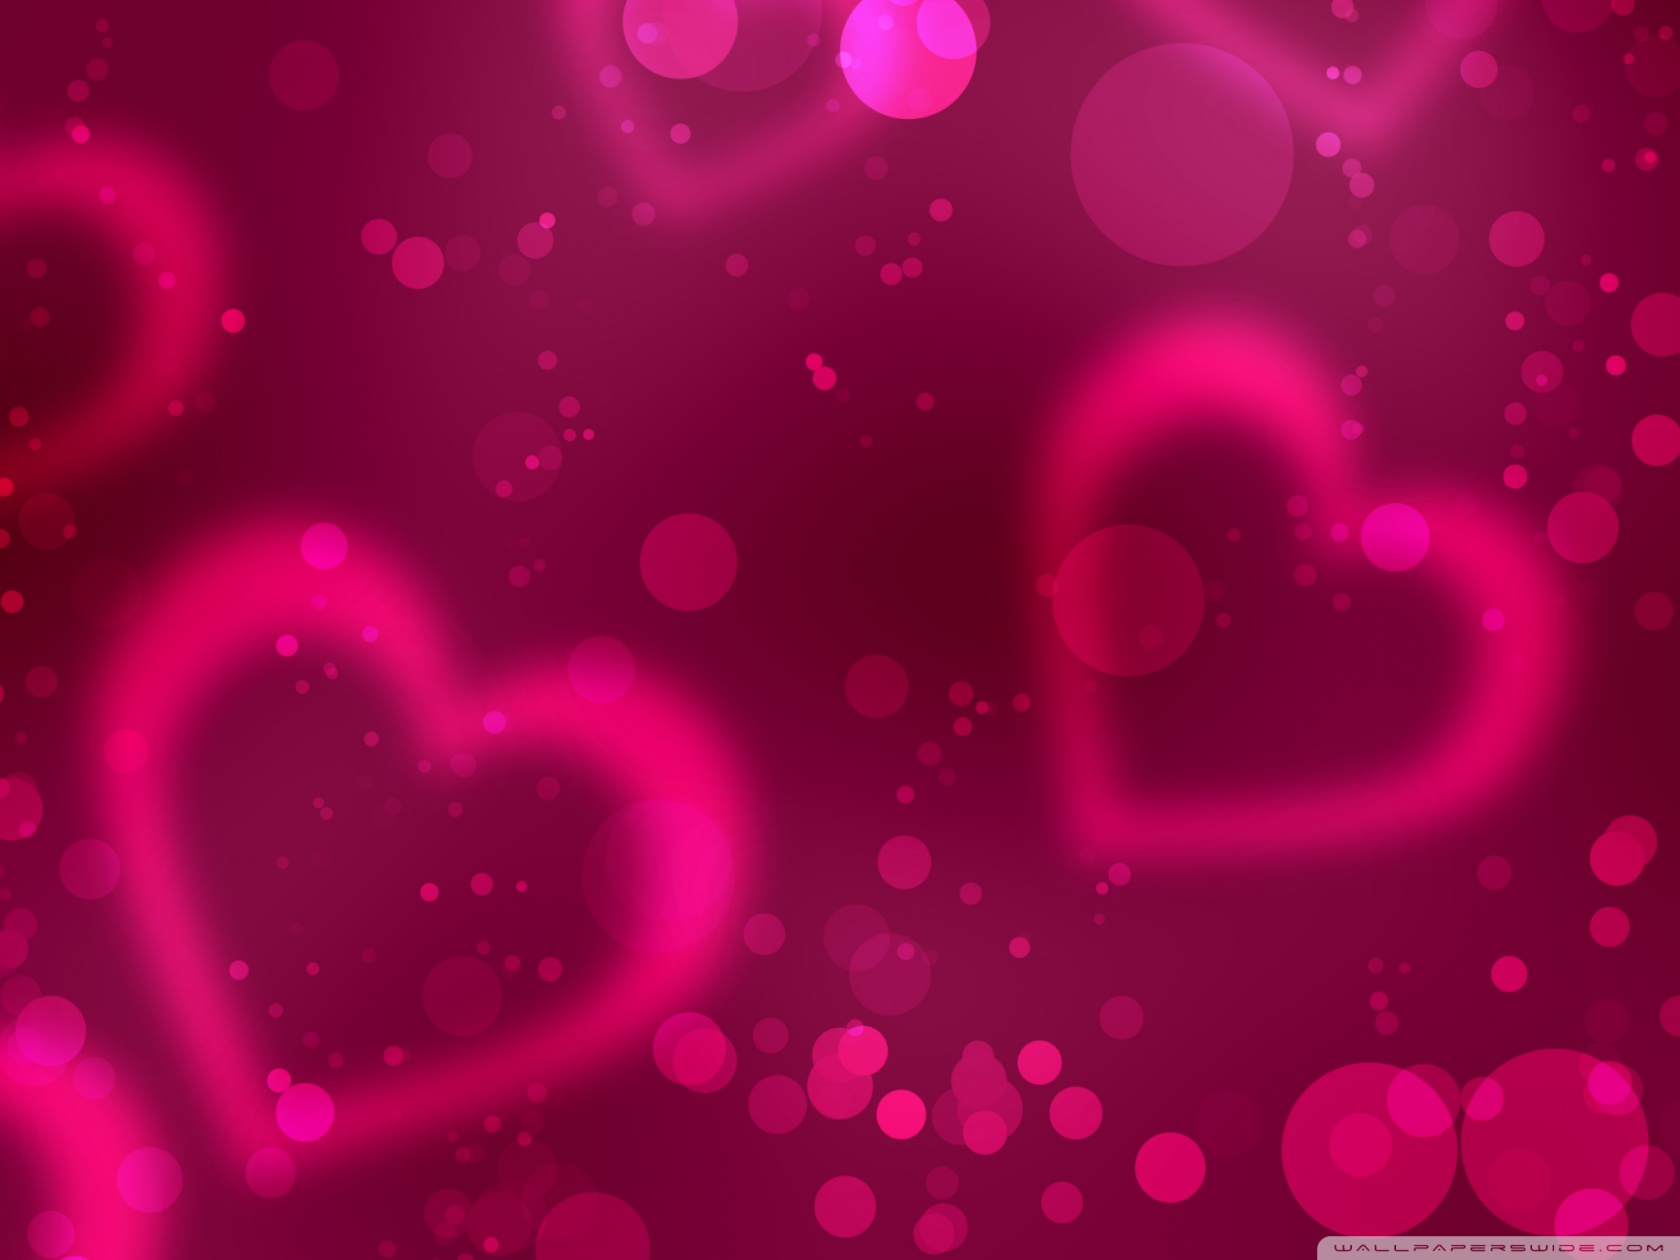 New Year Christmas Candy Heart wallpaper | 1680x1050 | #26542